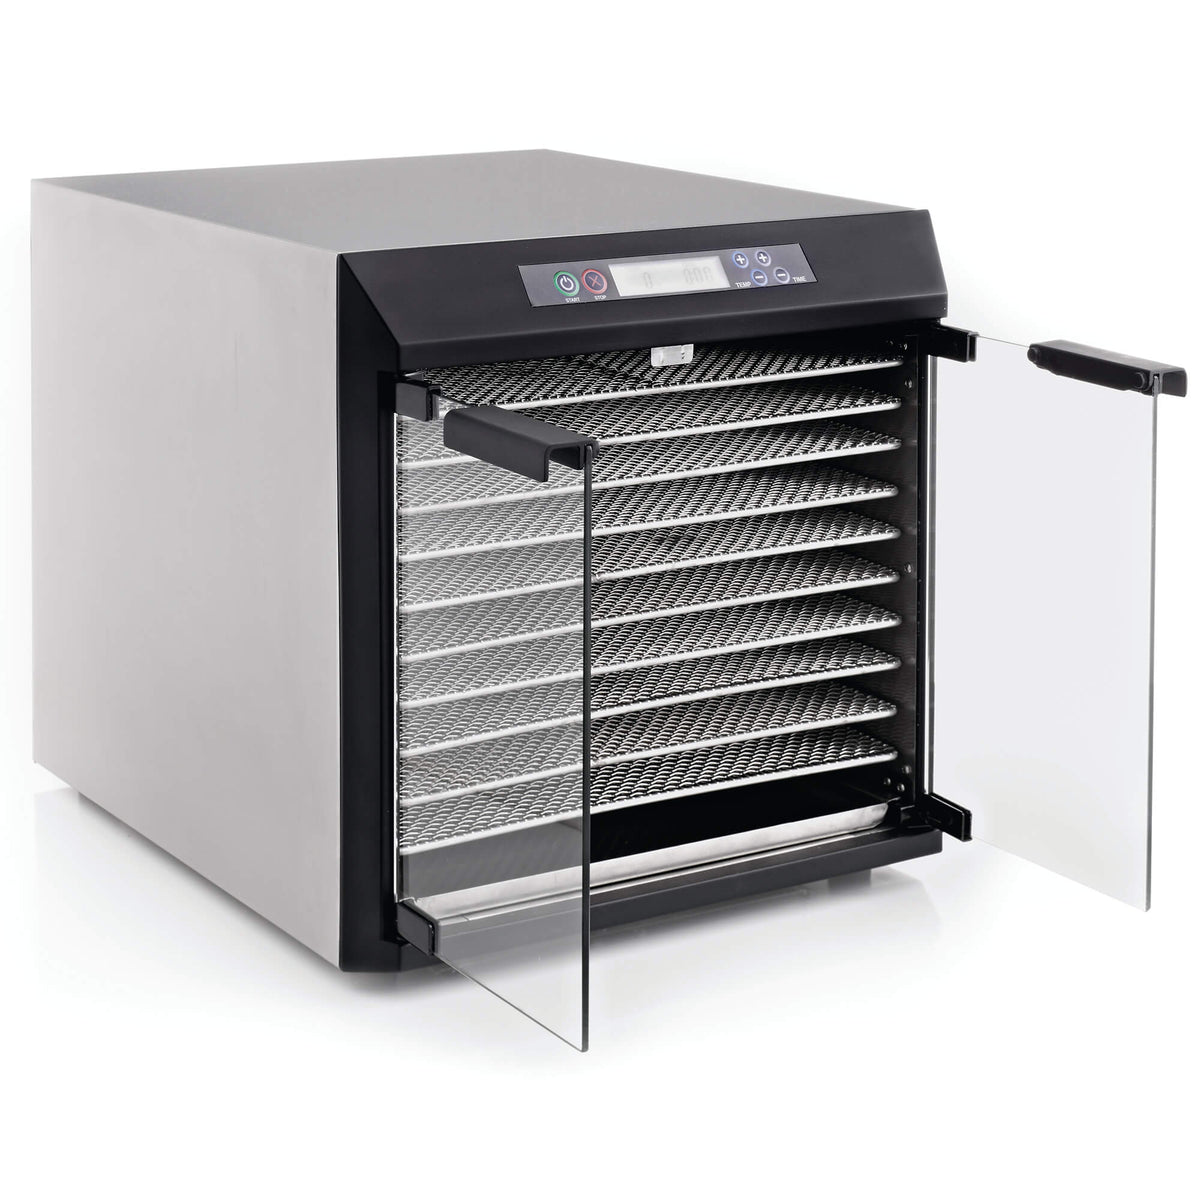 Excalibur EXC10EL 10 tray stainless steel digital dehydrator with glass armoured doors open and trays in.